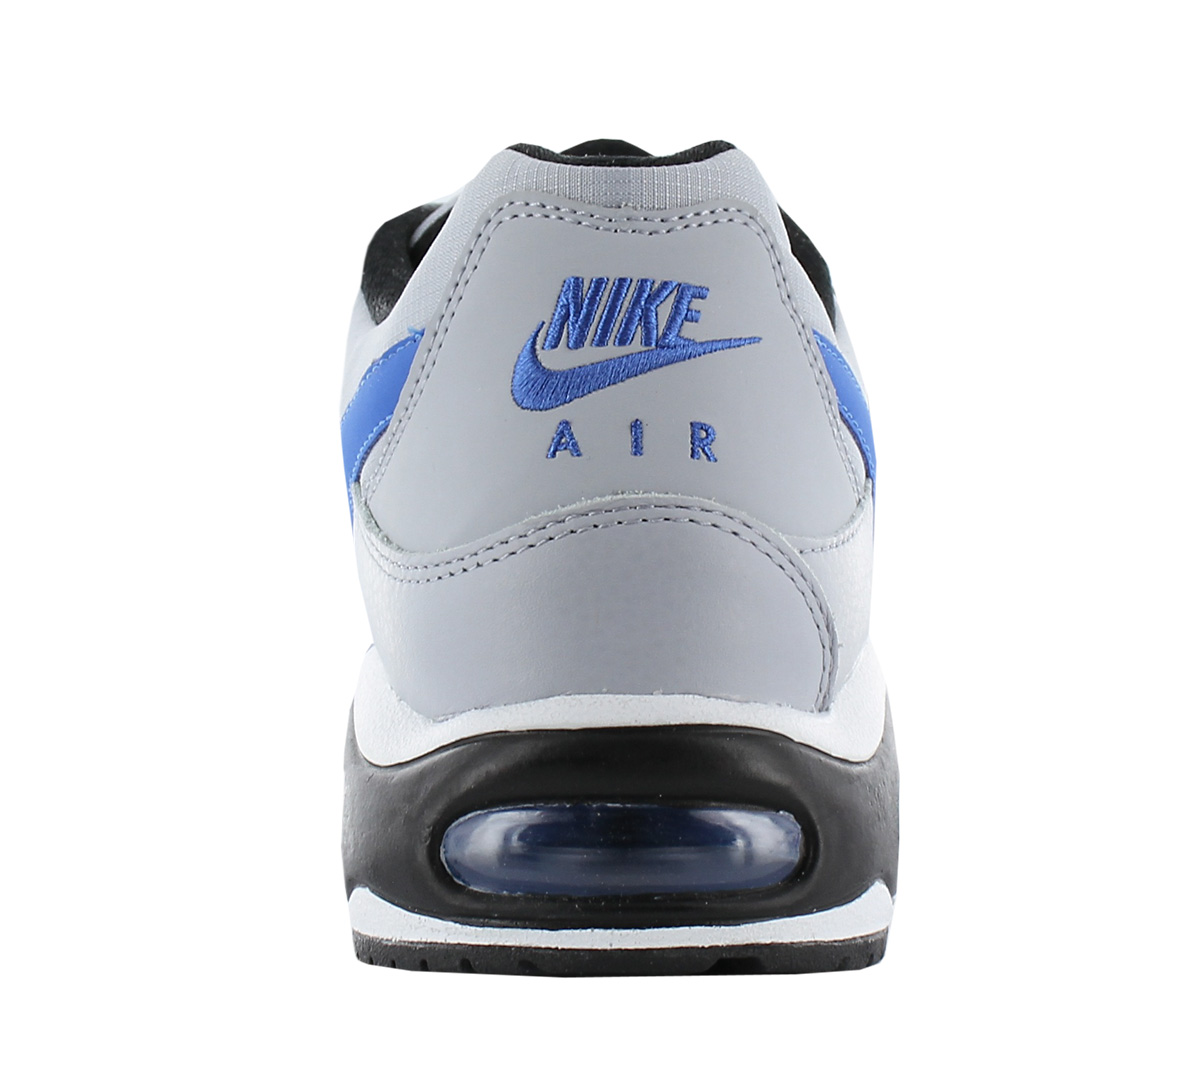 huge discount e7bbe 94ac5 Nike Air Max Command Men s Sneakers Shoes 629993-036 Trainers Grey ...